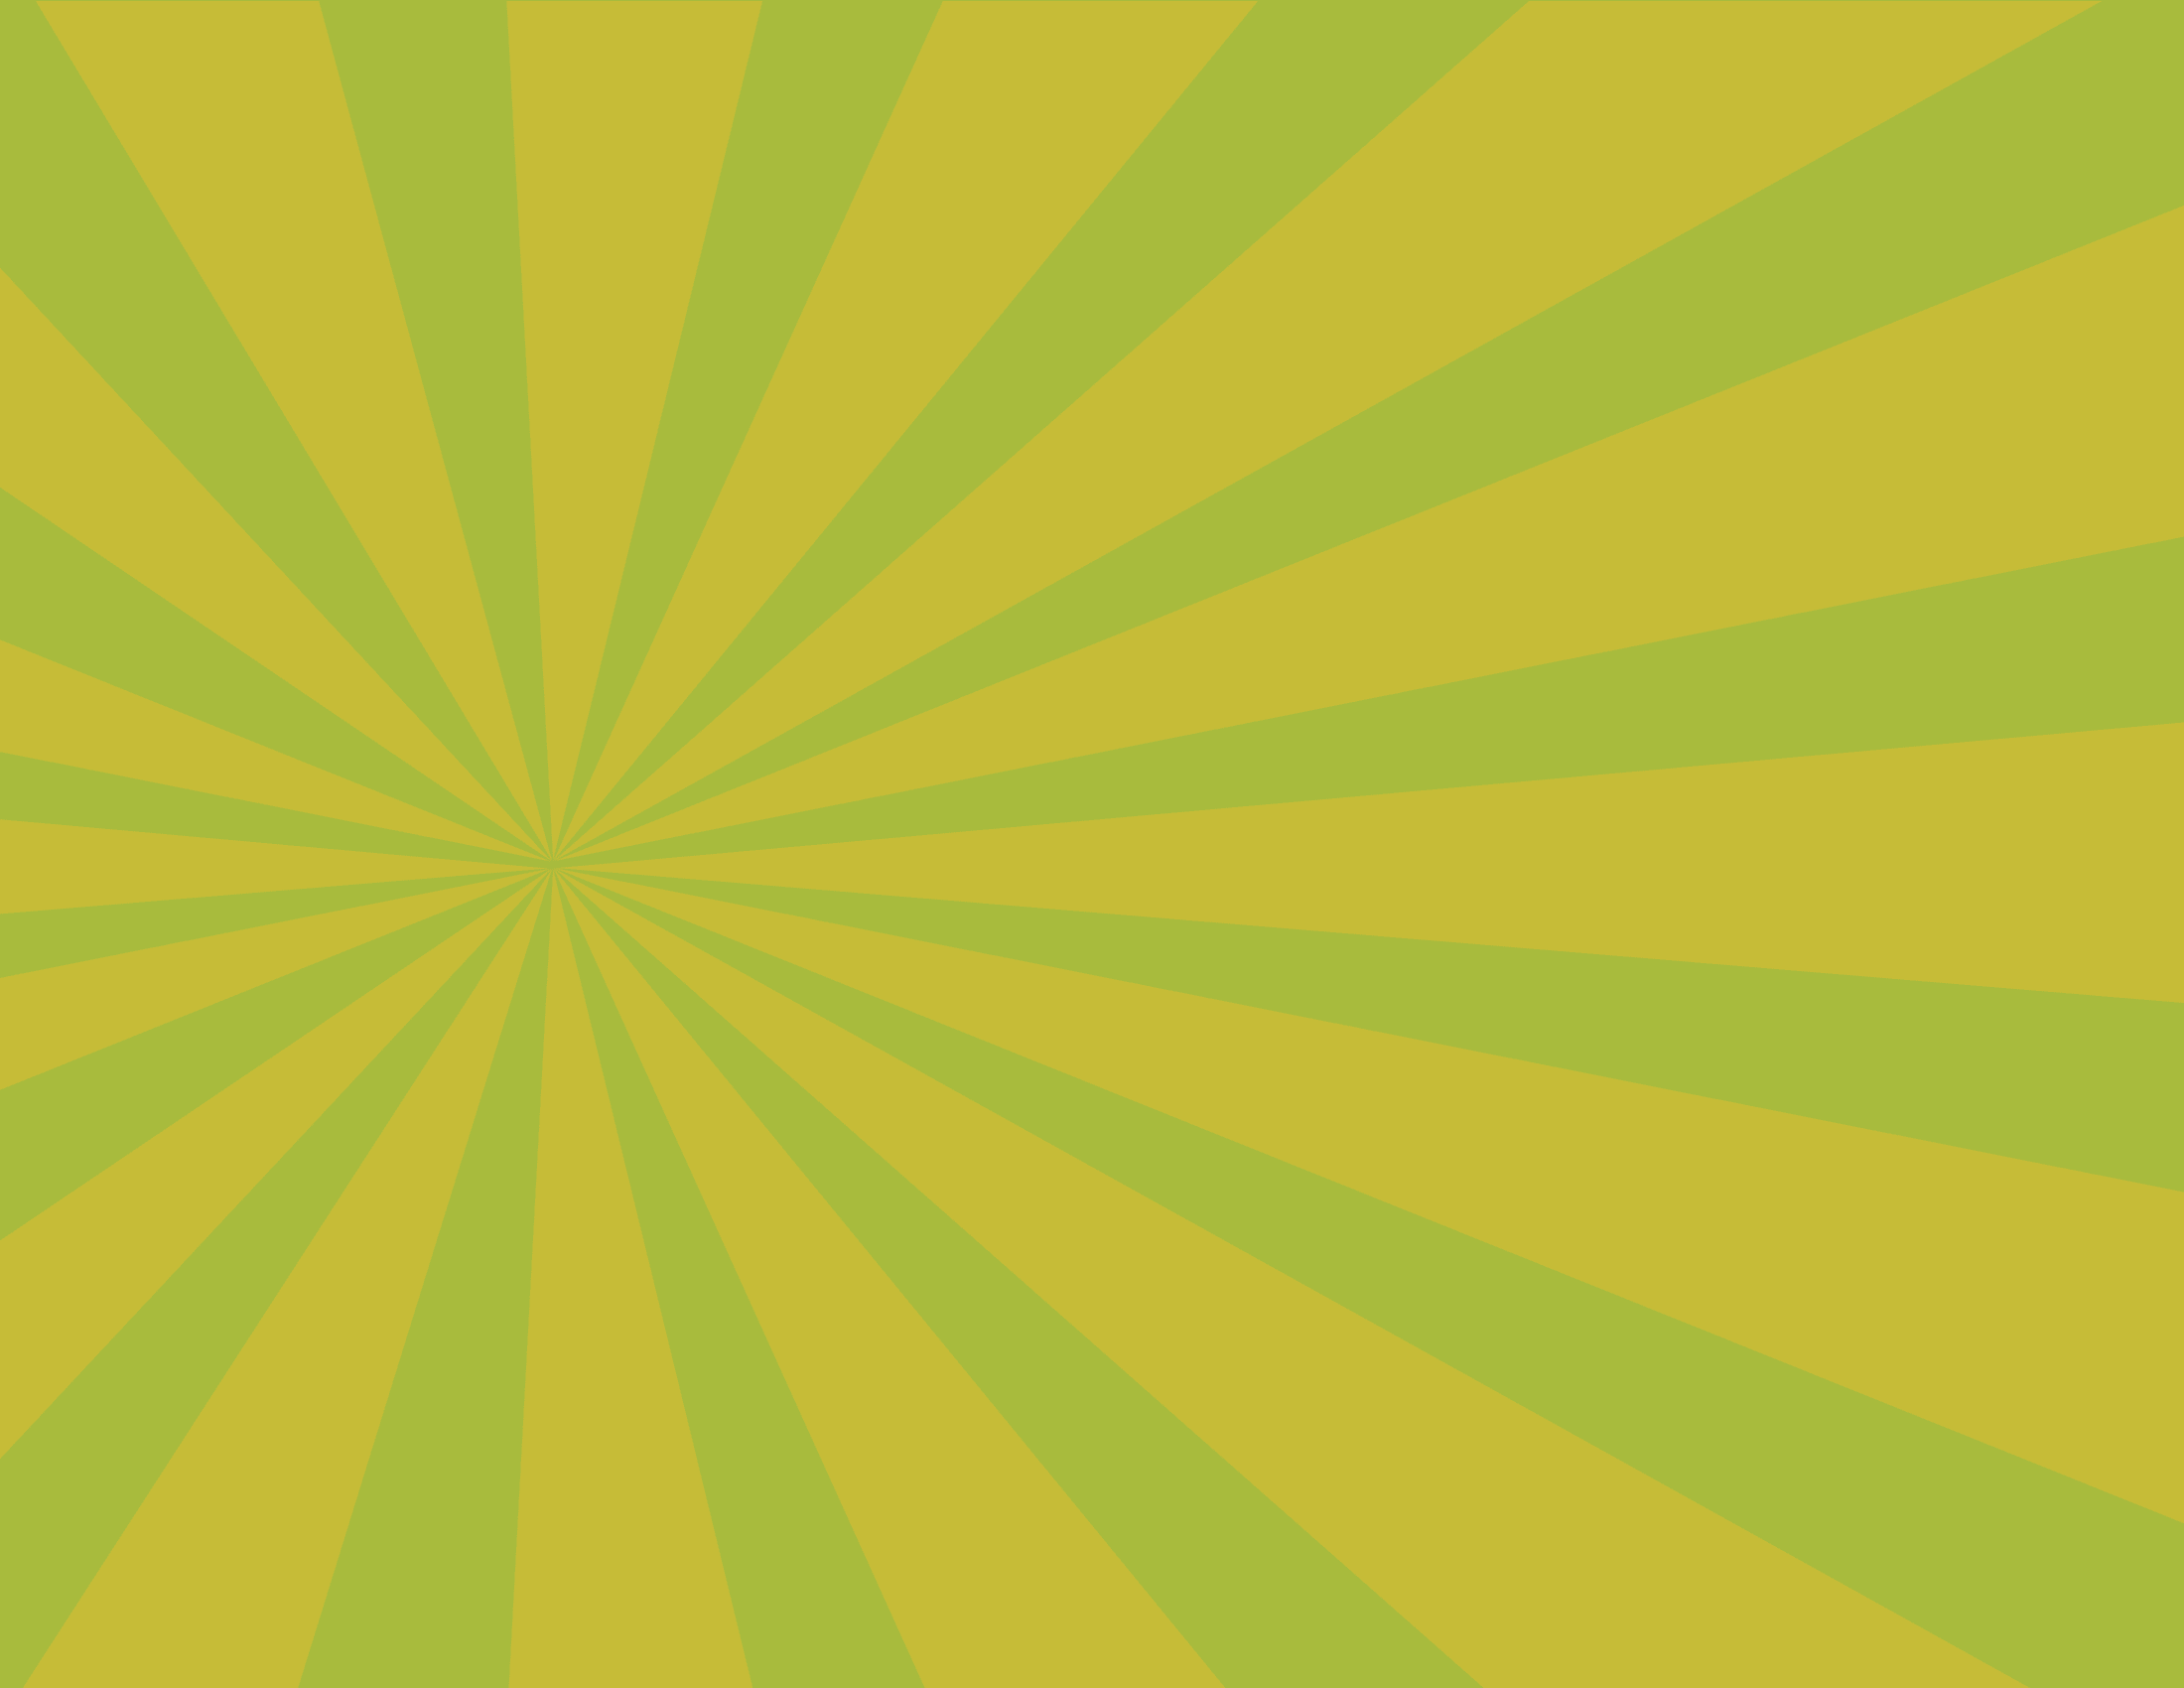 free sunburst background in any colors